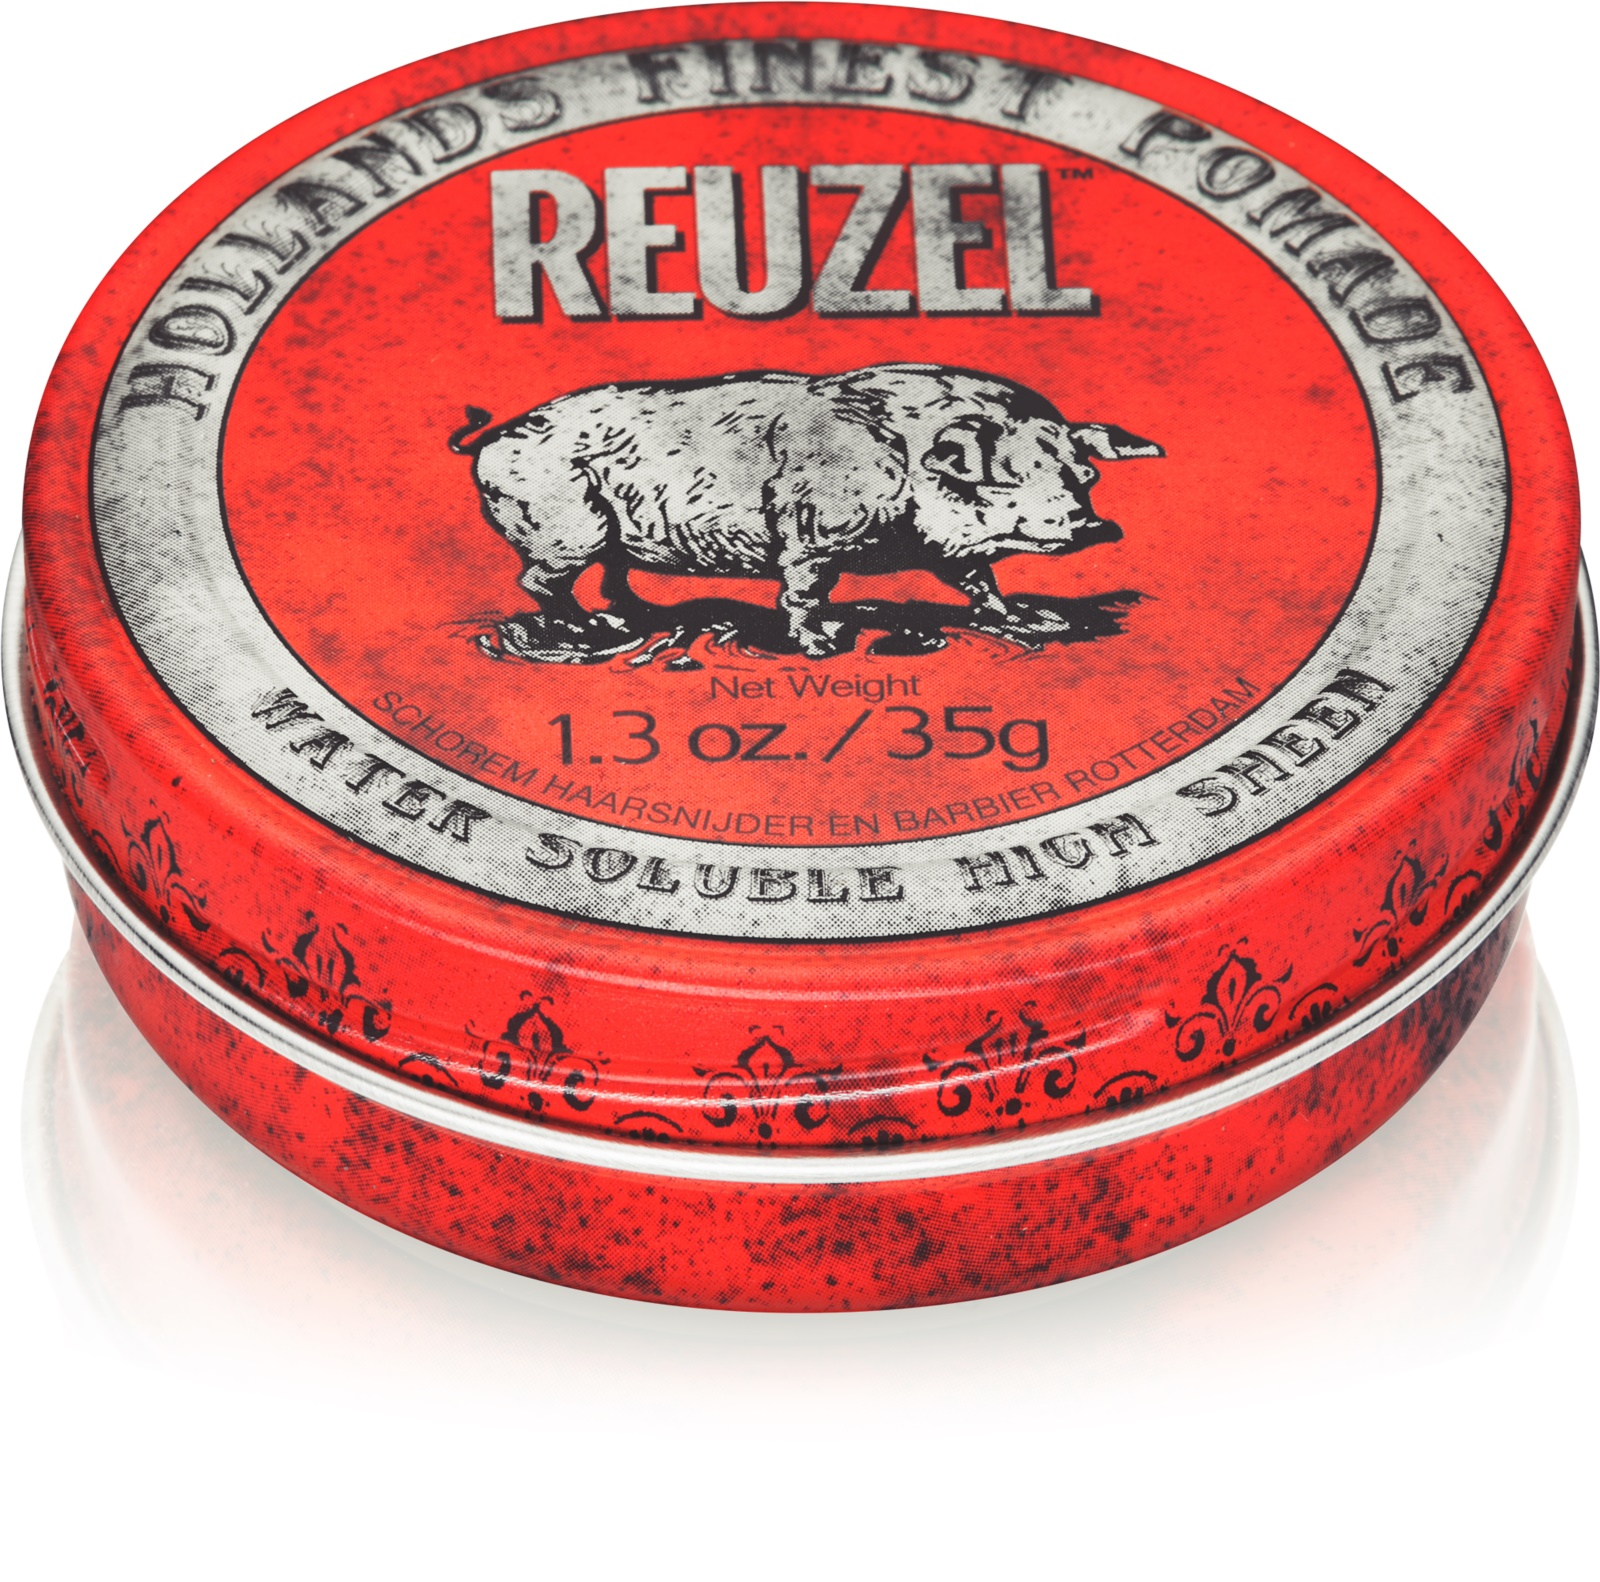 REUZEL Hollands Finest Pomade Water Soluble Night Sheen 35 g